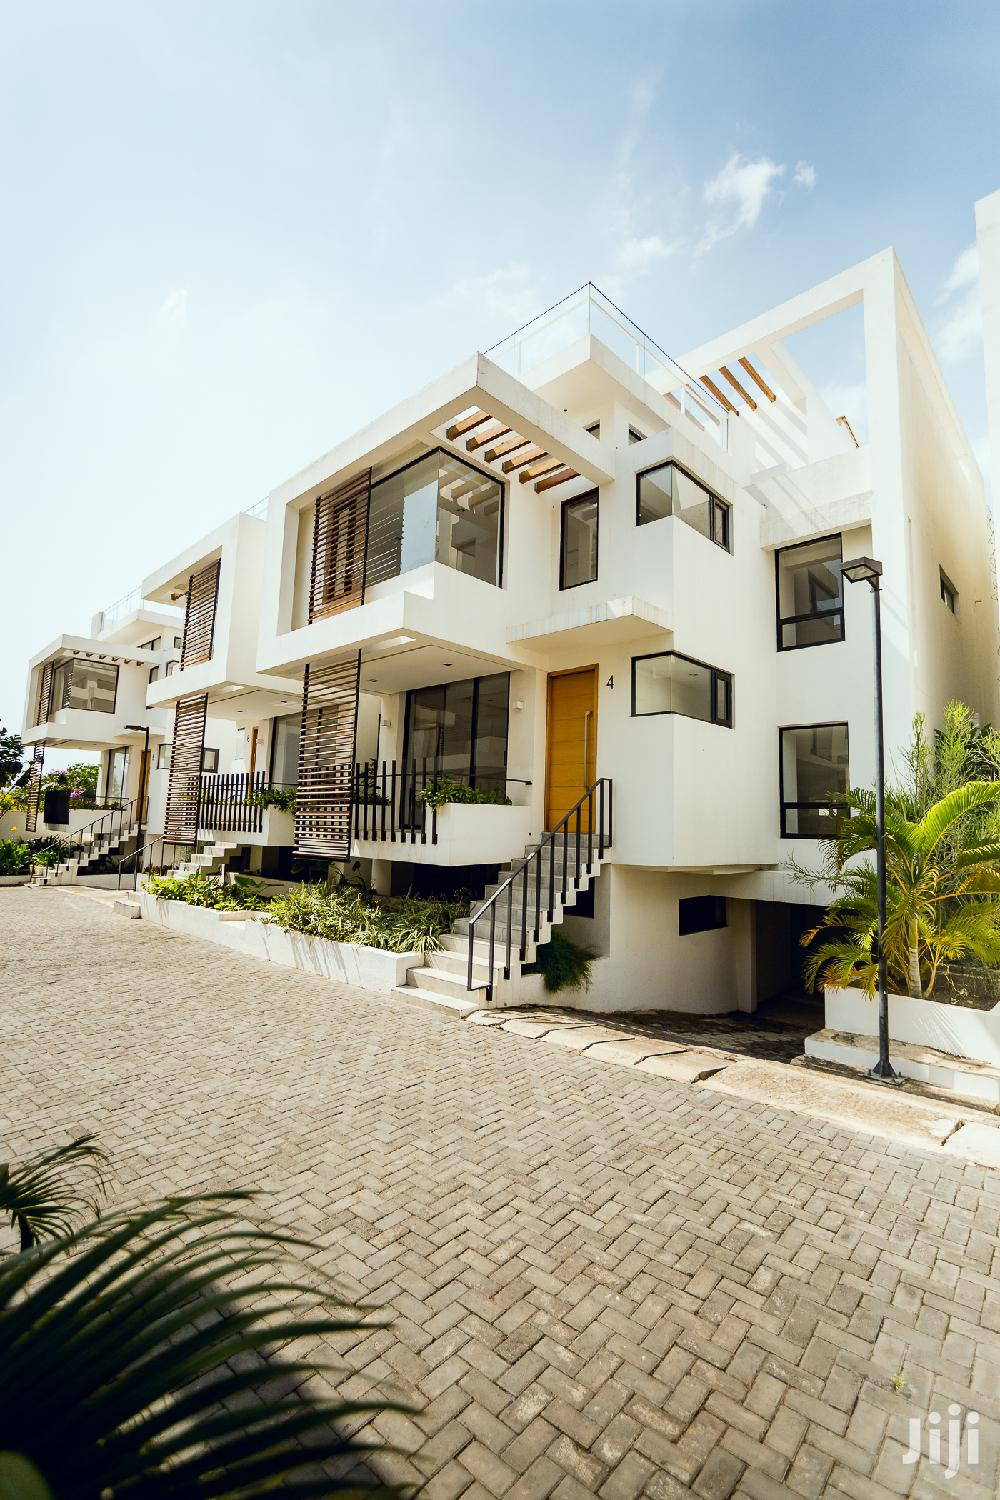 5bedroom Townhouse & 1room Outhouse @ Cantonments For Sale | Houses & Apartments For Sale for sale in Cantonments, Greater Accra, Ghana